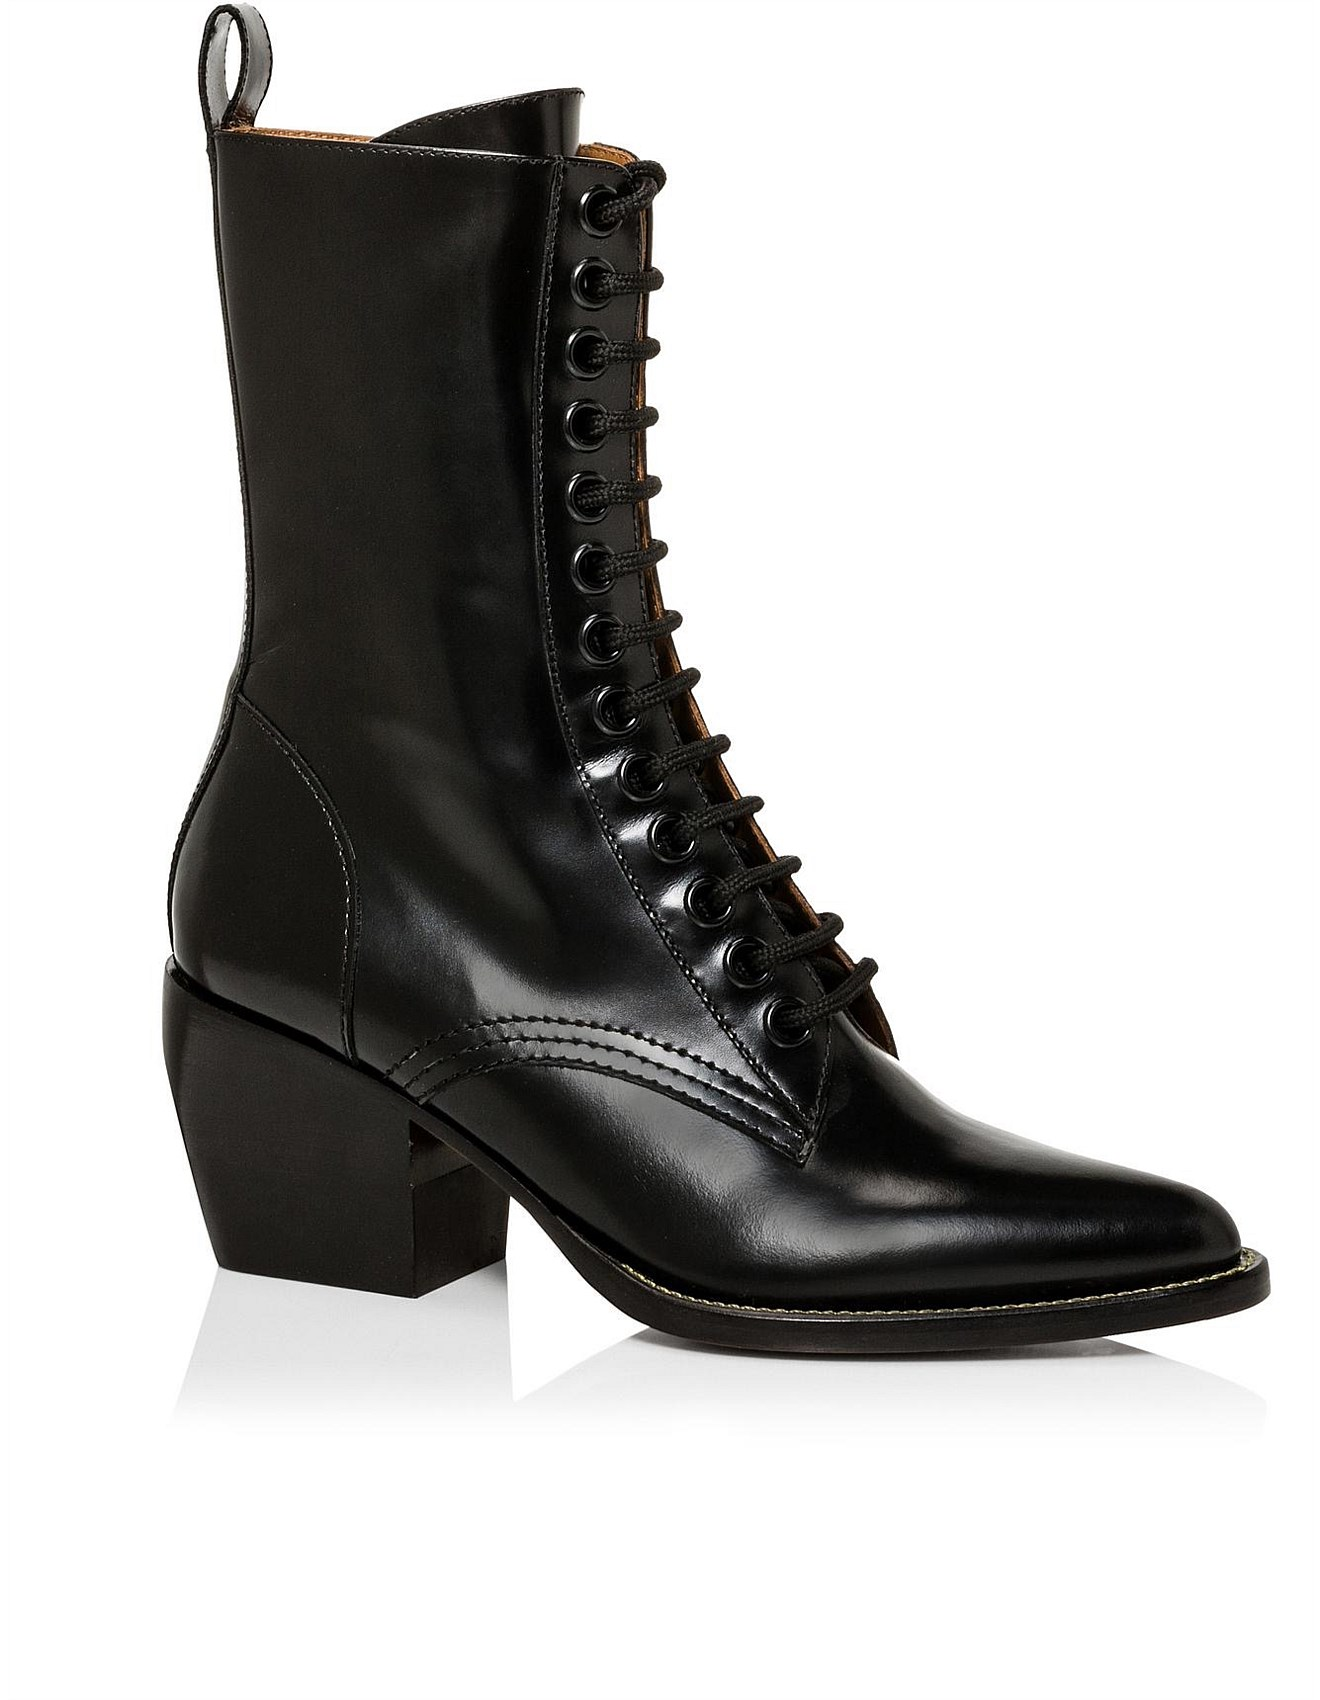 0e24e31908 RYLEE LACE UP ANKLE BOOT